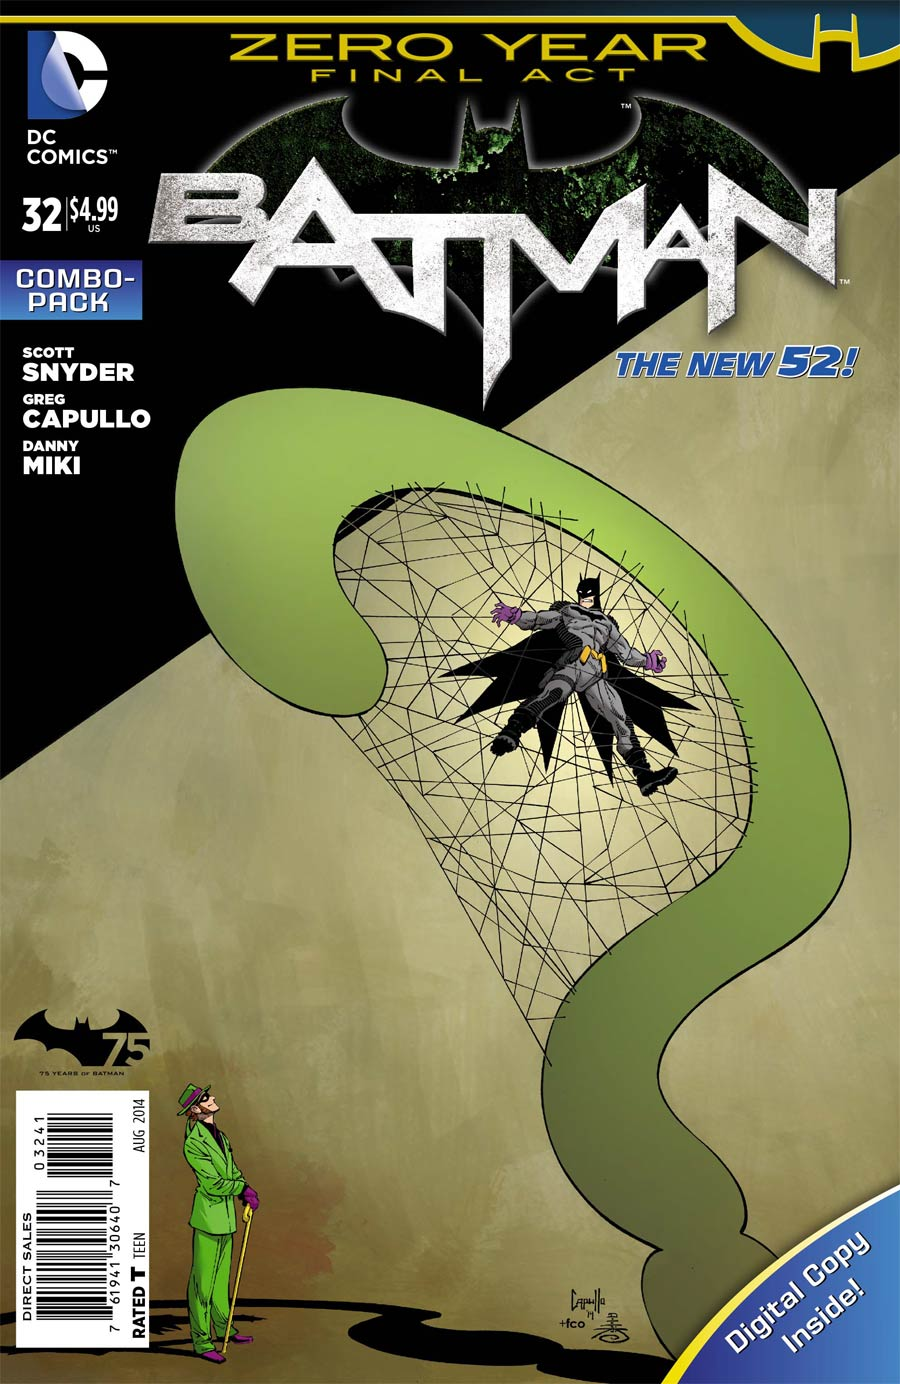 Batman Vol 2 #32 Cover C Combo Pack With Polybag (Zero Year Tie-In)